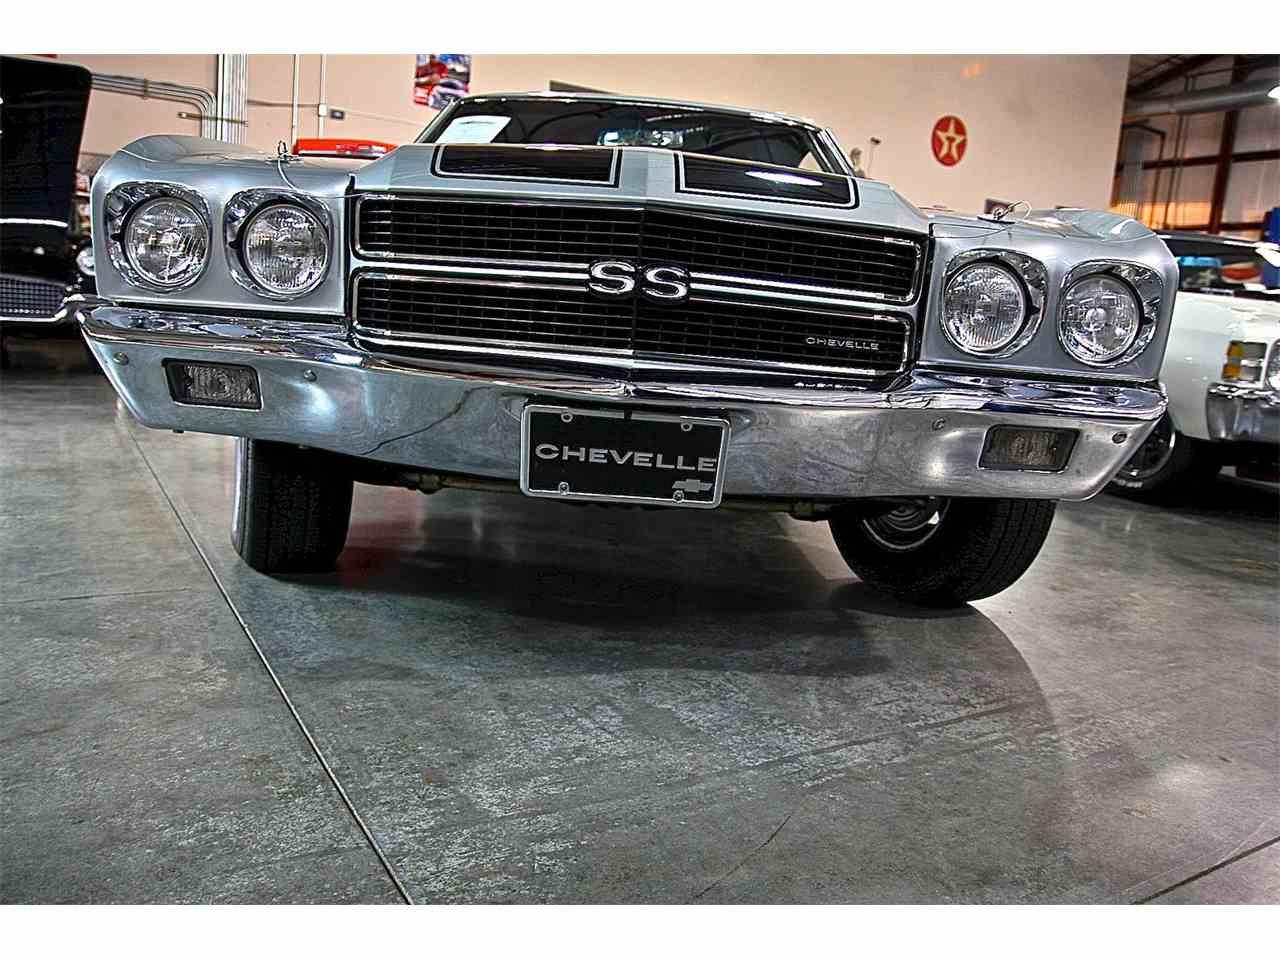 Large Picture of Classic '70 Chevrolet Chevelle SS located in Fort Lauderdale Florida - $92,000.00 Offered by a Private Seller - L41W